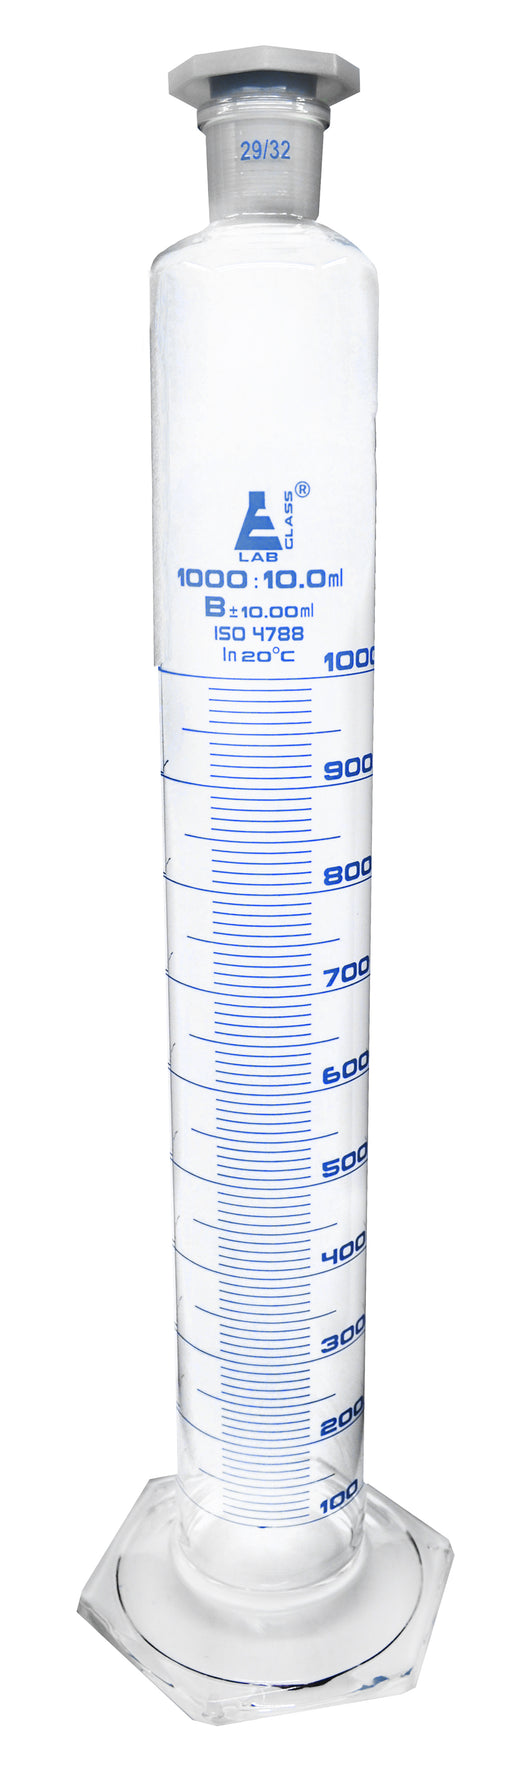 Measuring Cylinder, 1000ml - Class B - 29/32 Polypropylene Stopper - Hexagonal Base, Blue Graduations - Borosilicate Glass - Eisco Labs